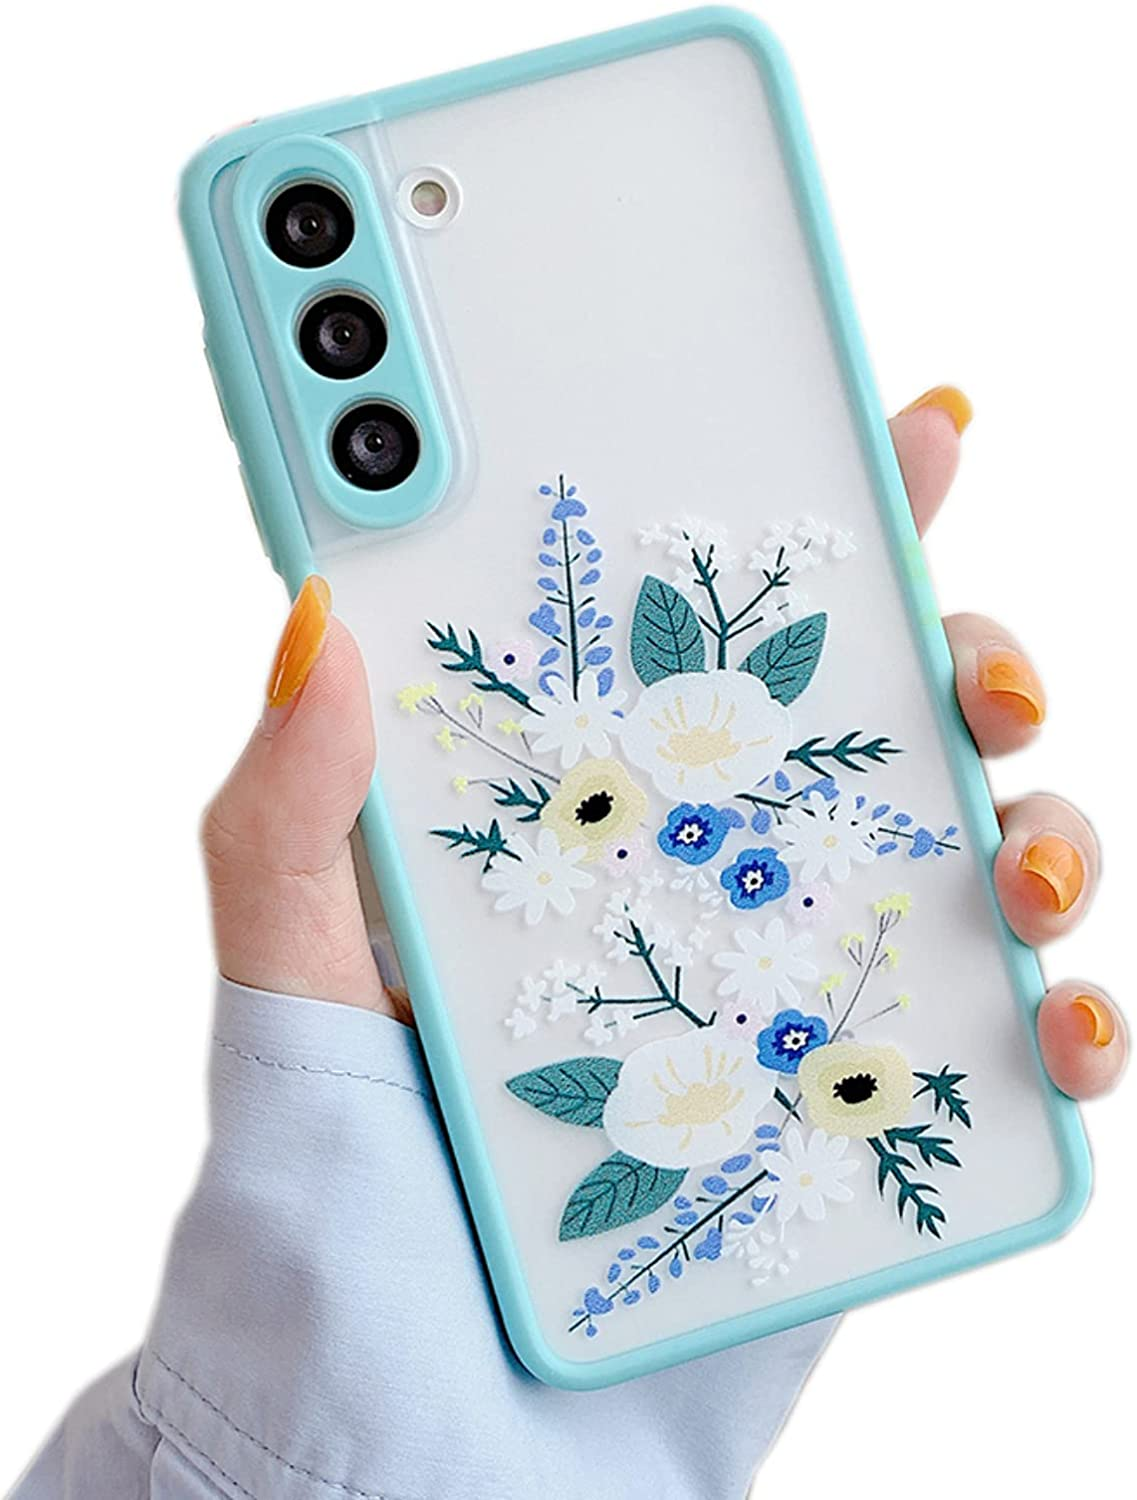 SUYACS Samsung Galaxy S21 Case Cute Frosted Matte Clear Floral Cover for Women Girls Camera Lens Protect Soft TPU Silicone Shockproof Protective Cases for Samsung S21 5G 6.2 Inch (Blue)